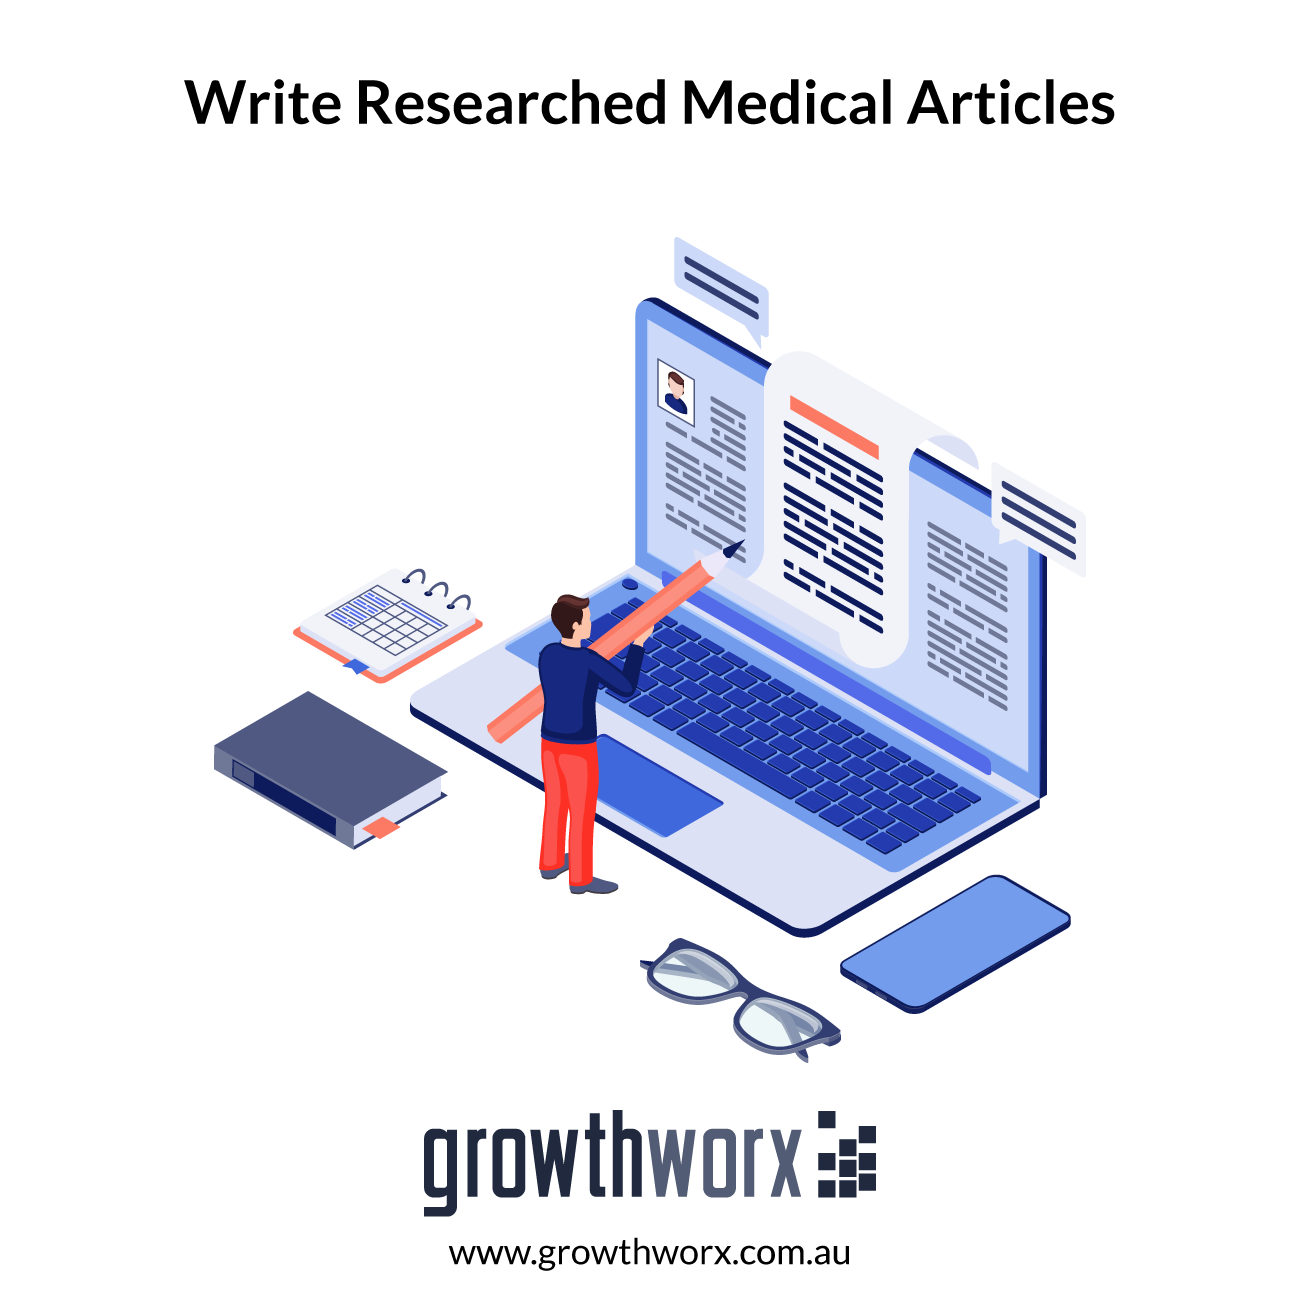 I will write researched medical articles and blogs as a doctor 1